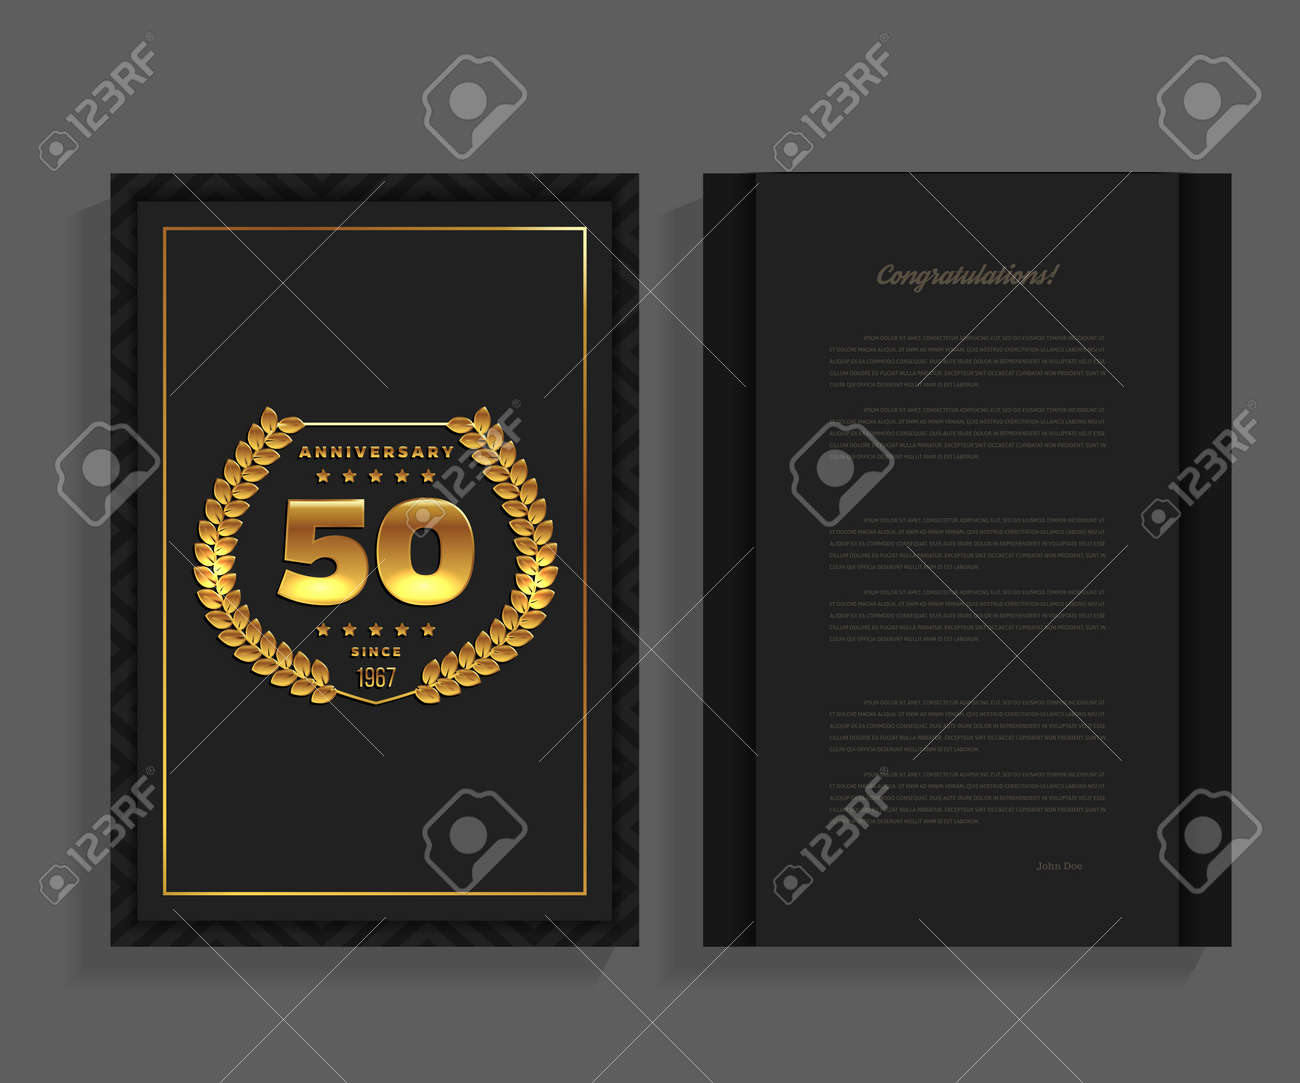 50th Anniversary Decorated Greeting Or Invitation Card Template In Gold Standard Bild